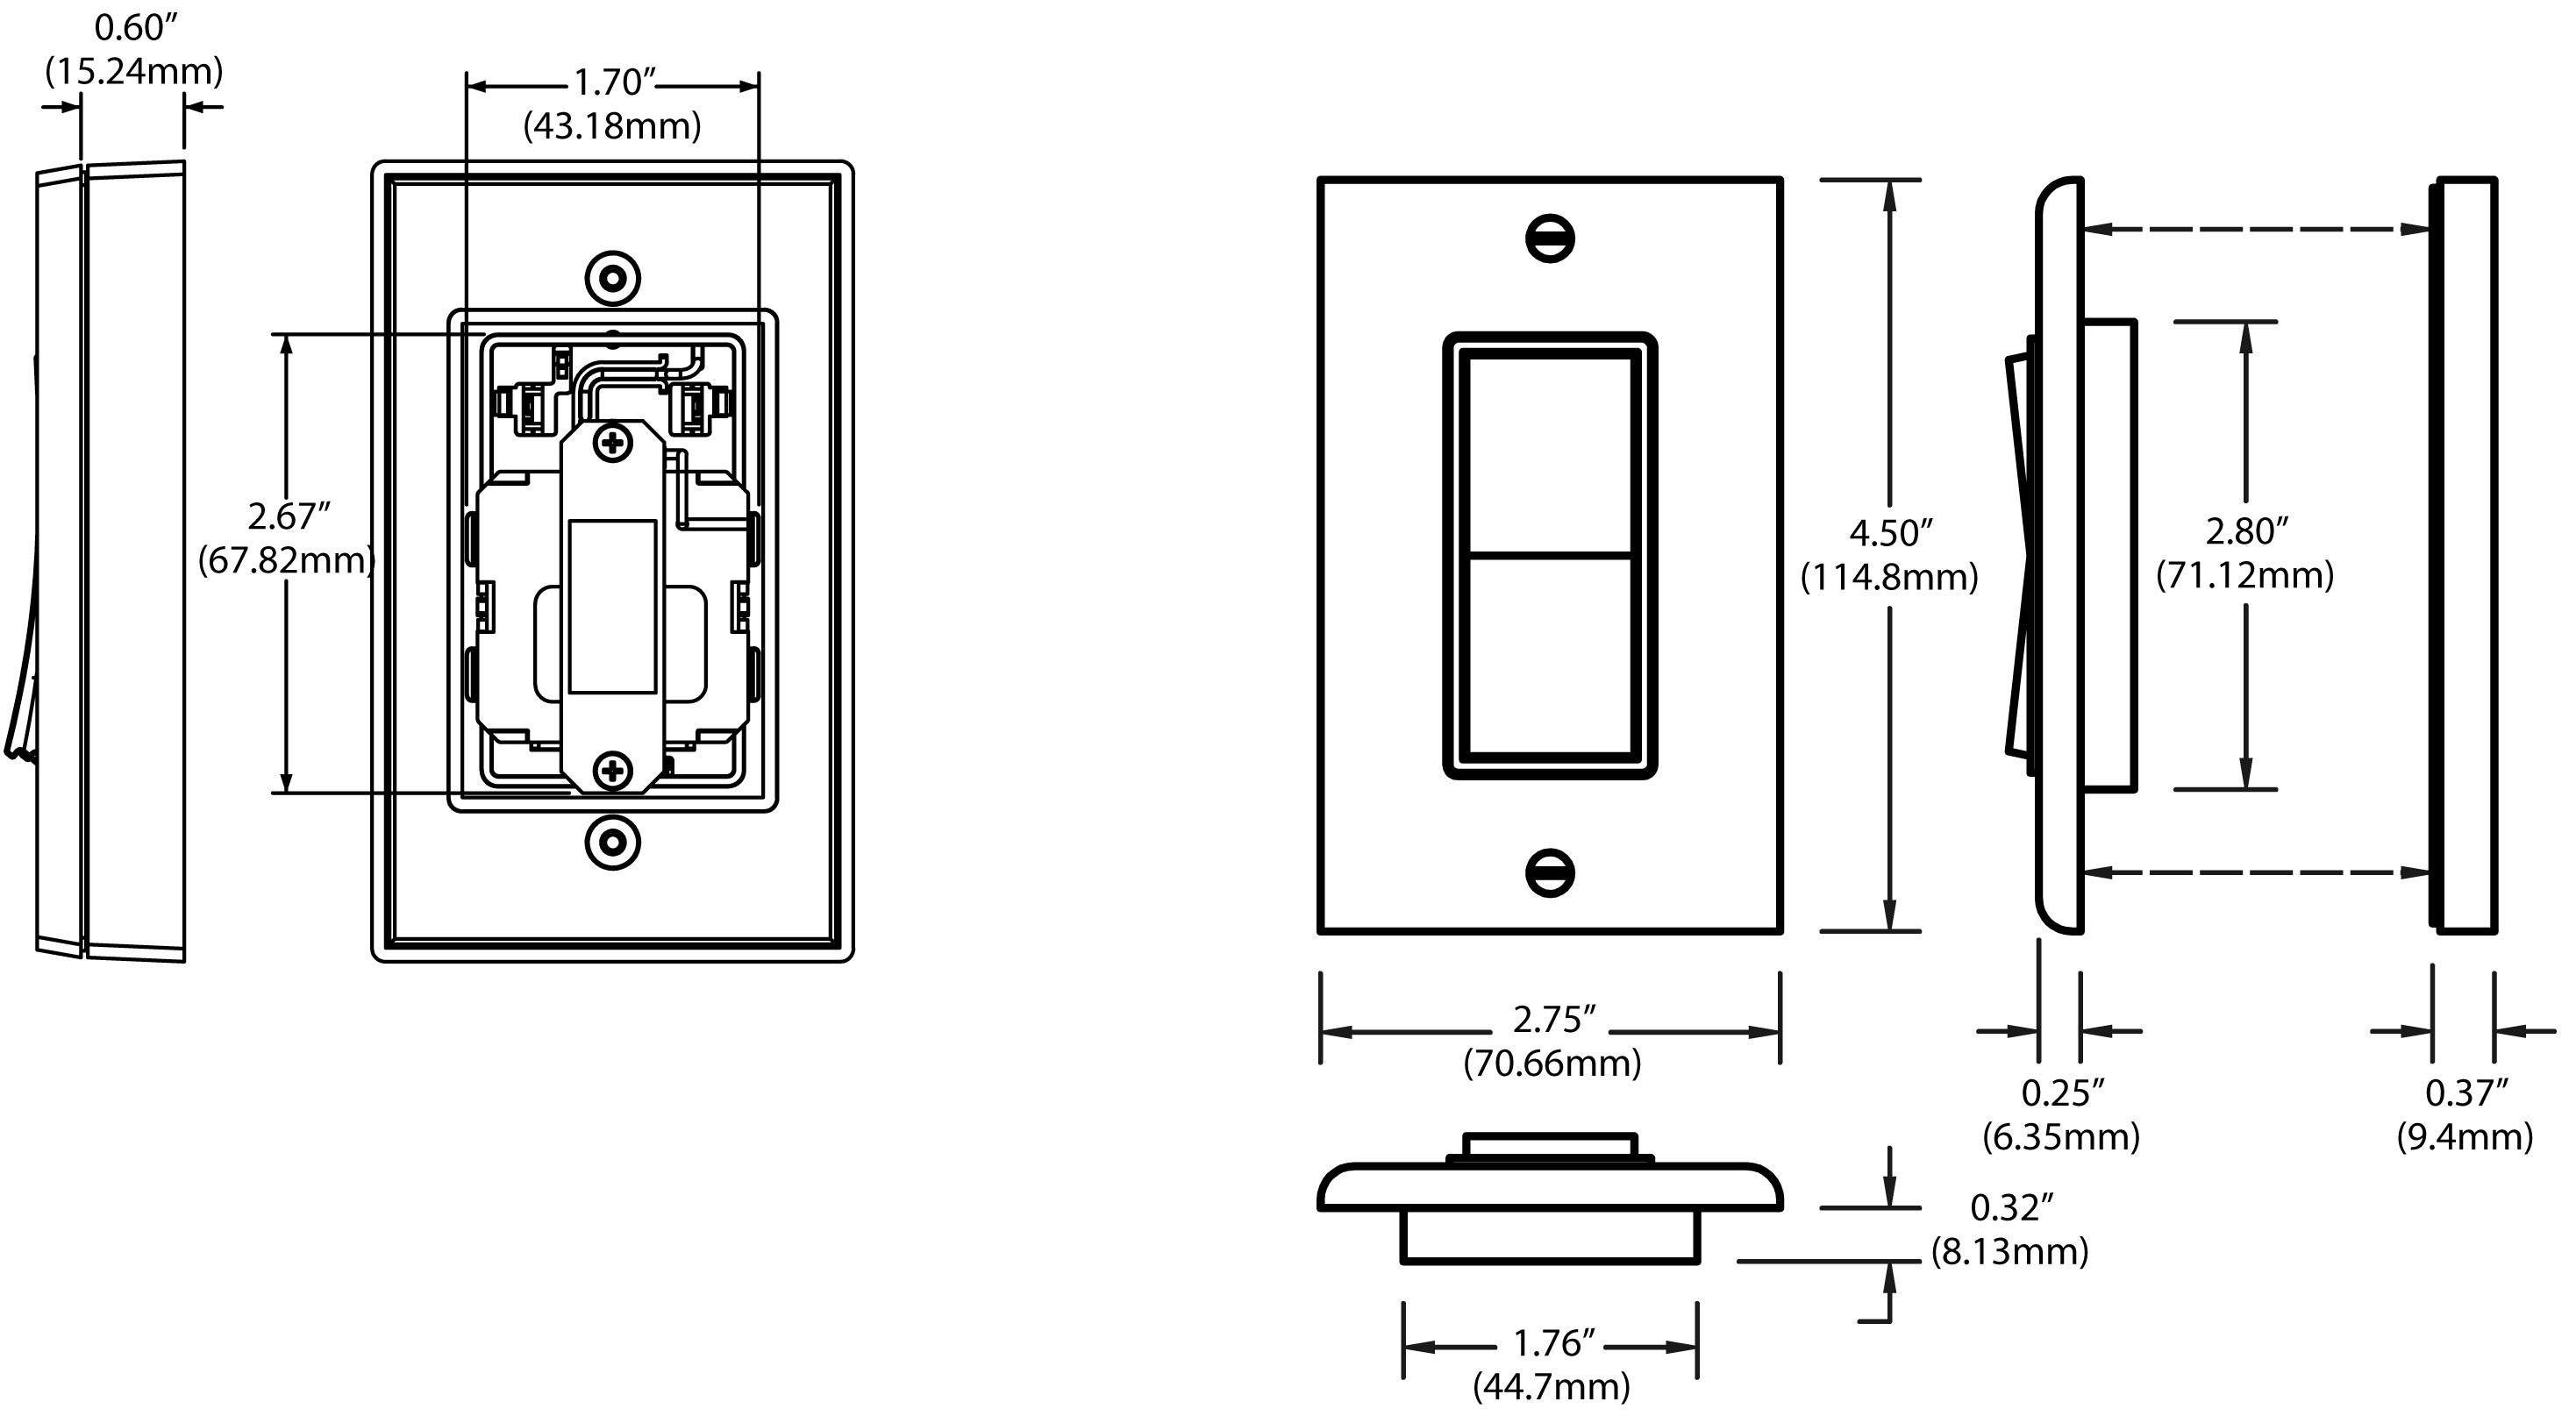 BottomILarge._V390024919_ leviton wss0s p0w wireless self powered remote switch, white 3-Way Switch Wiring Diagram Variations at webbmarketing.co